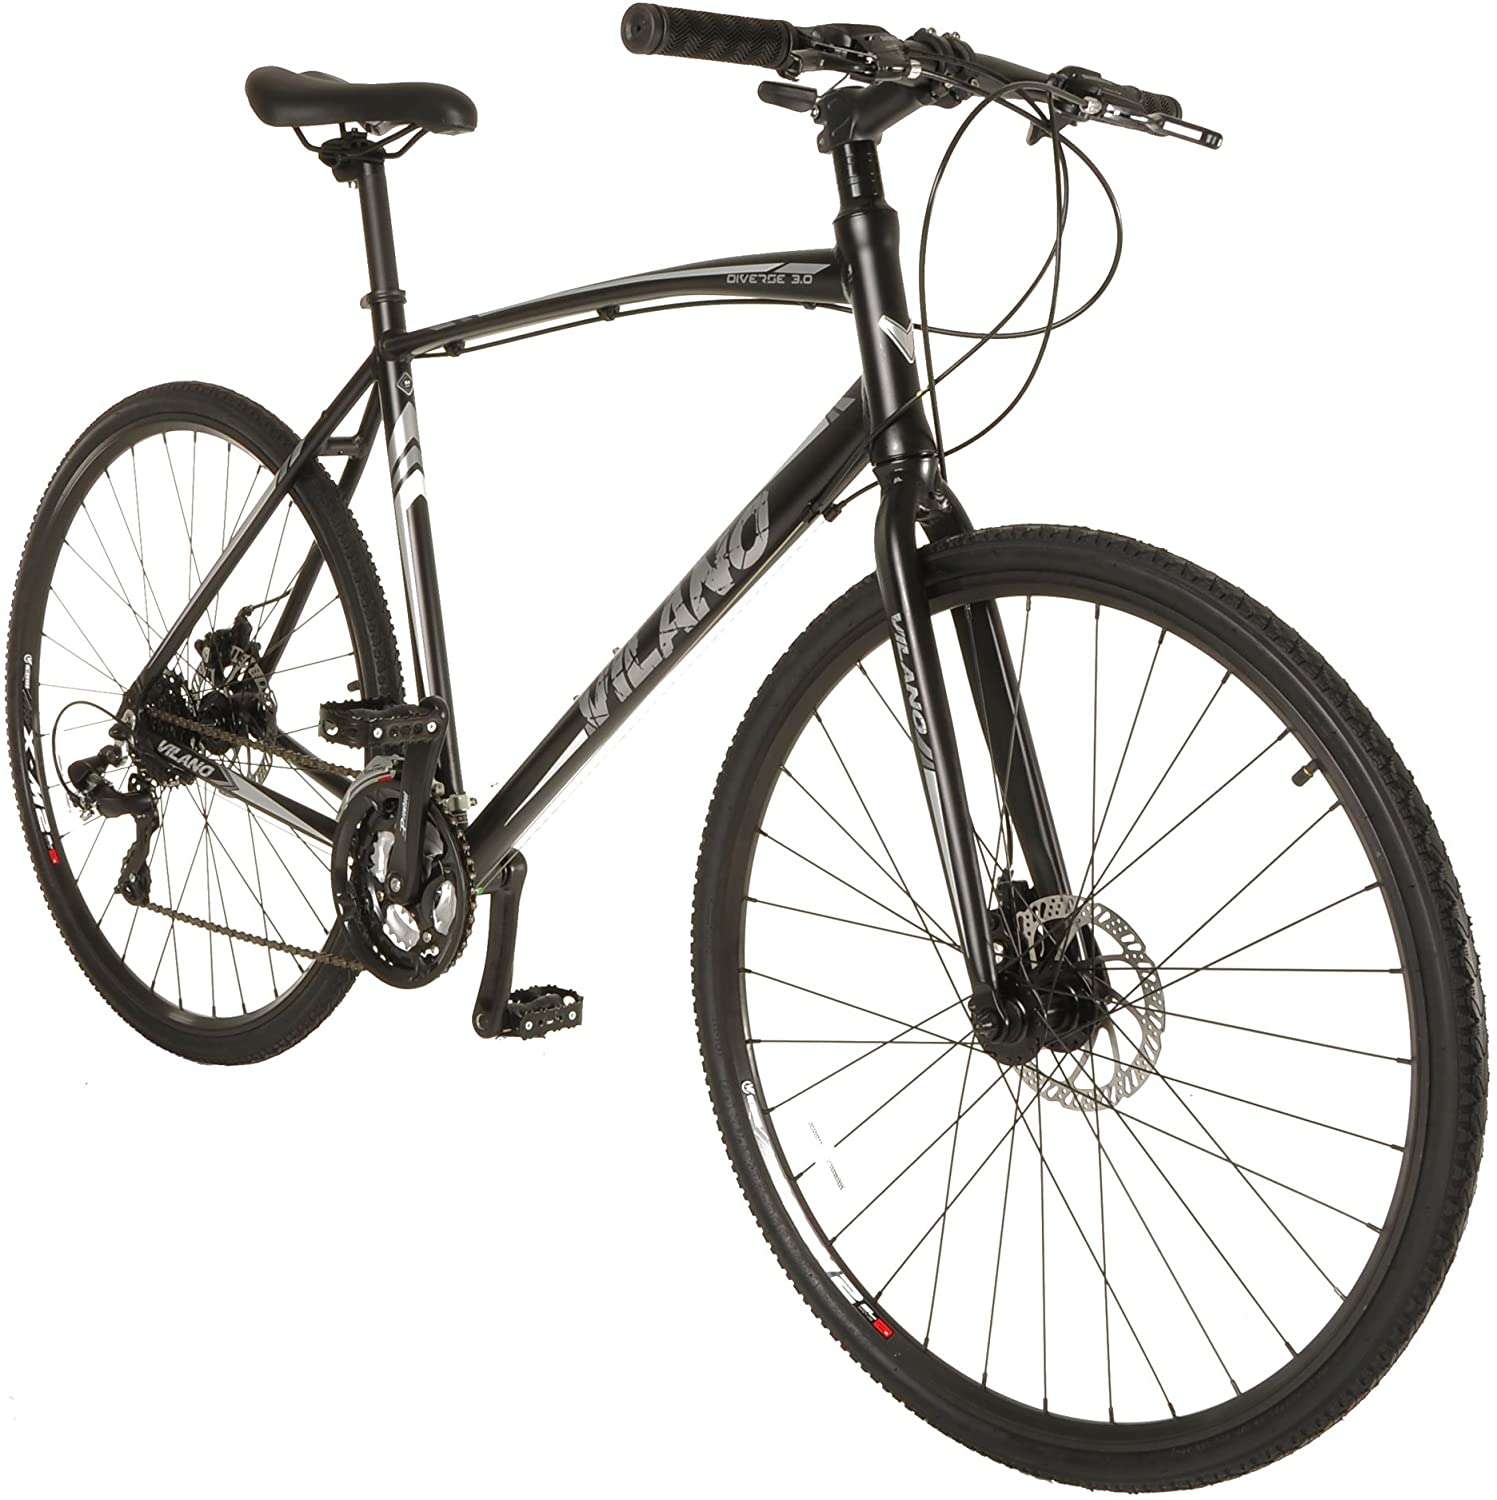 Best Mountain Bikes under $300 Reviews 2021 13